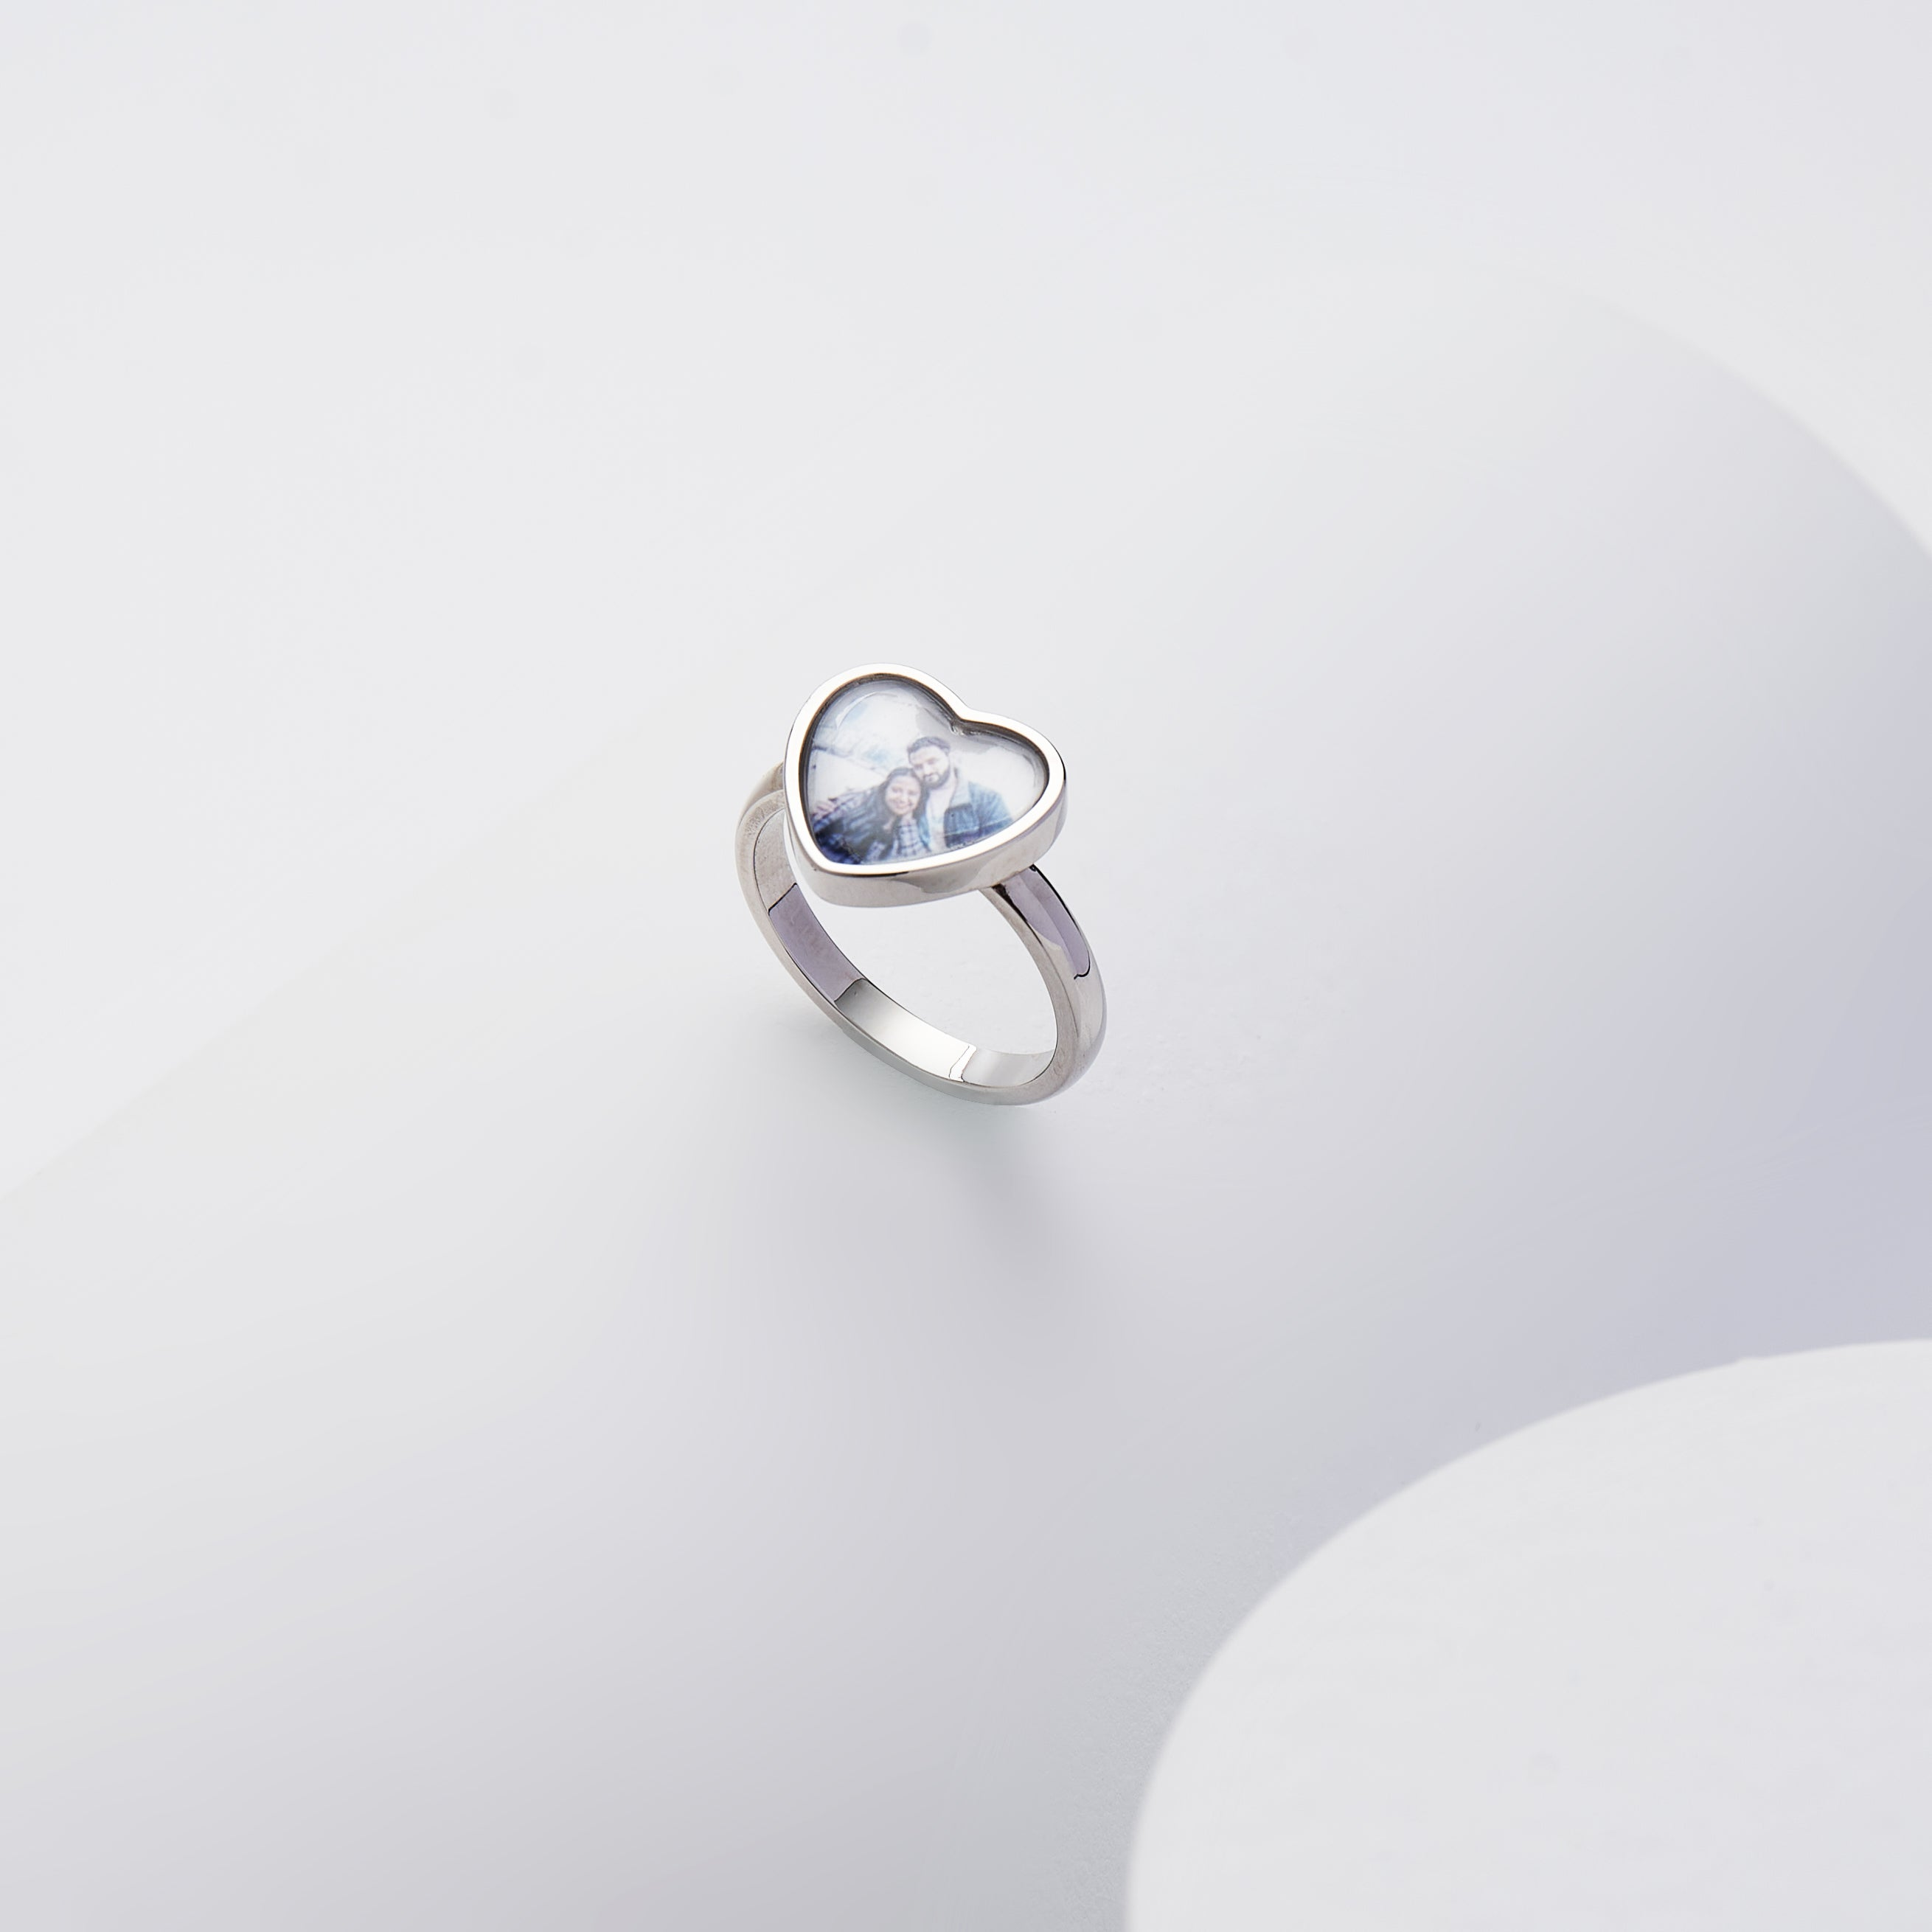 925 Silver Photo Ring Heart-Shaped, Mother's Gift